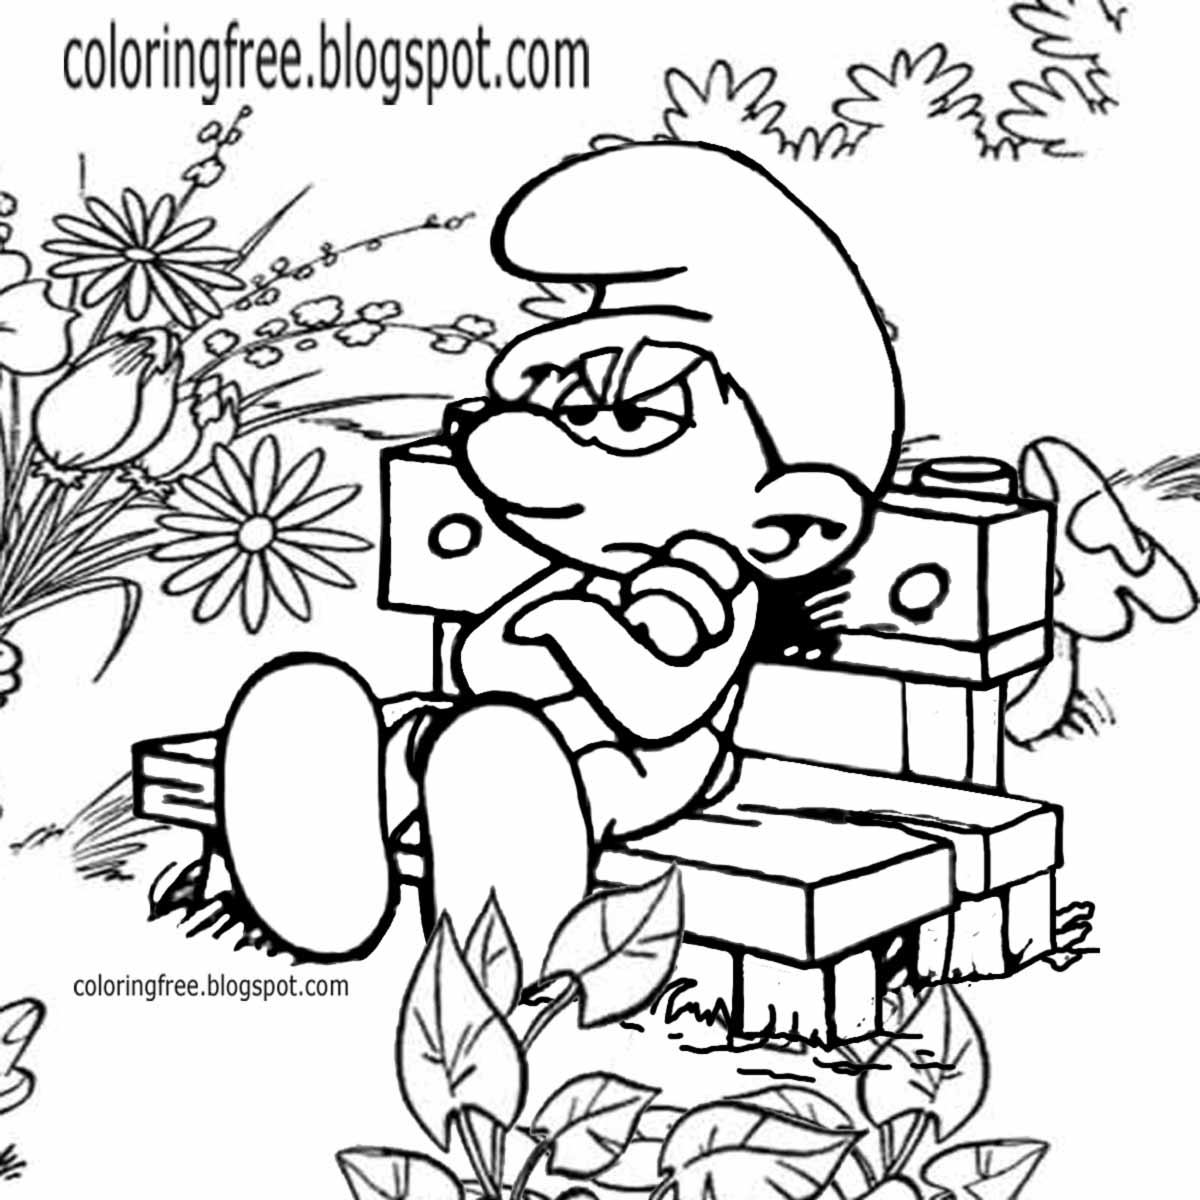 Free coloring pages printable pictures to color kids for Grumpy smurf coloring pages